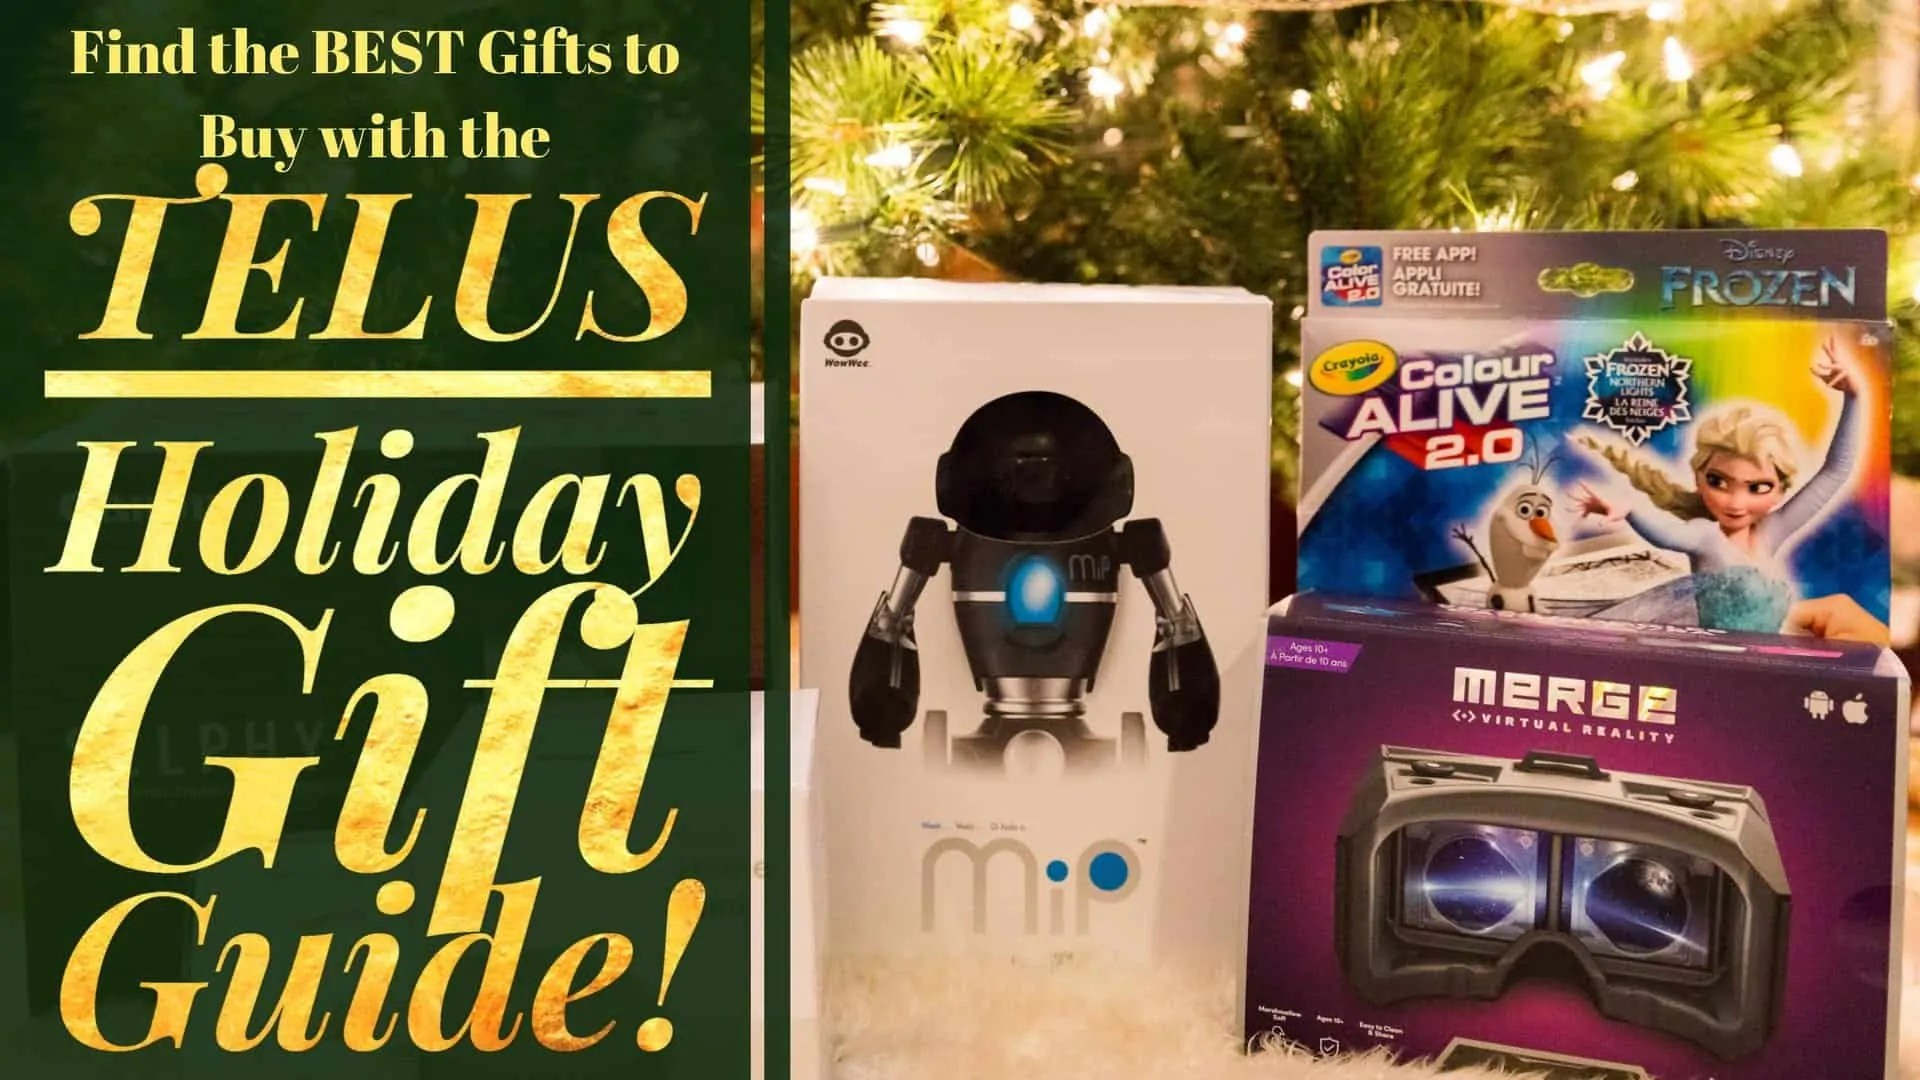 Find the BEST Gifts to Buy with the TELUS Holiday Gift Guide